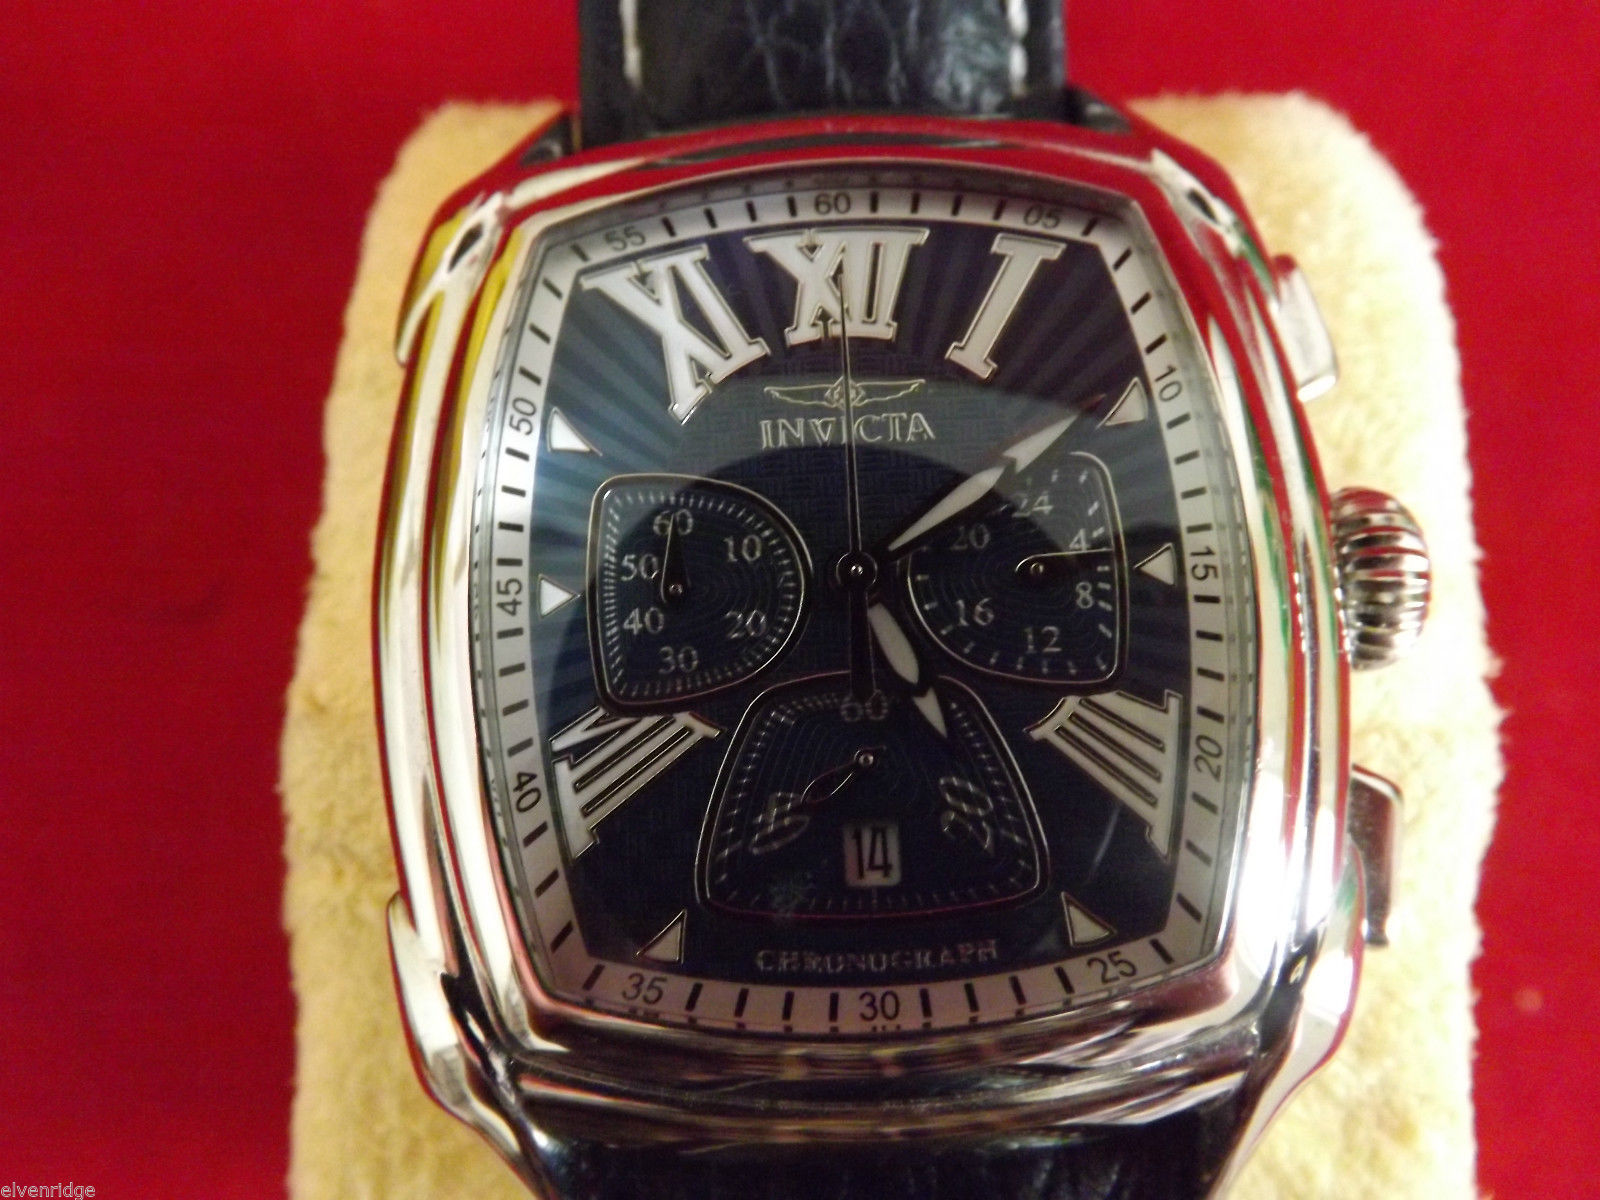 Invicta 2721 Men's Watch Genuine Leather Band